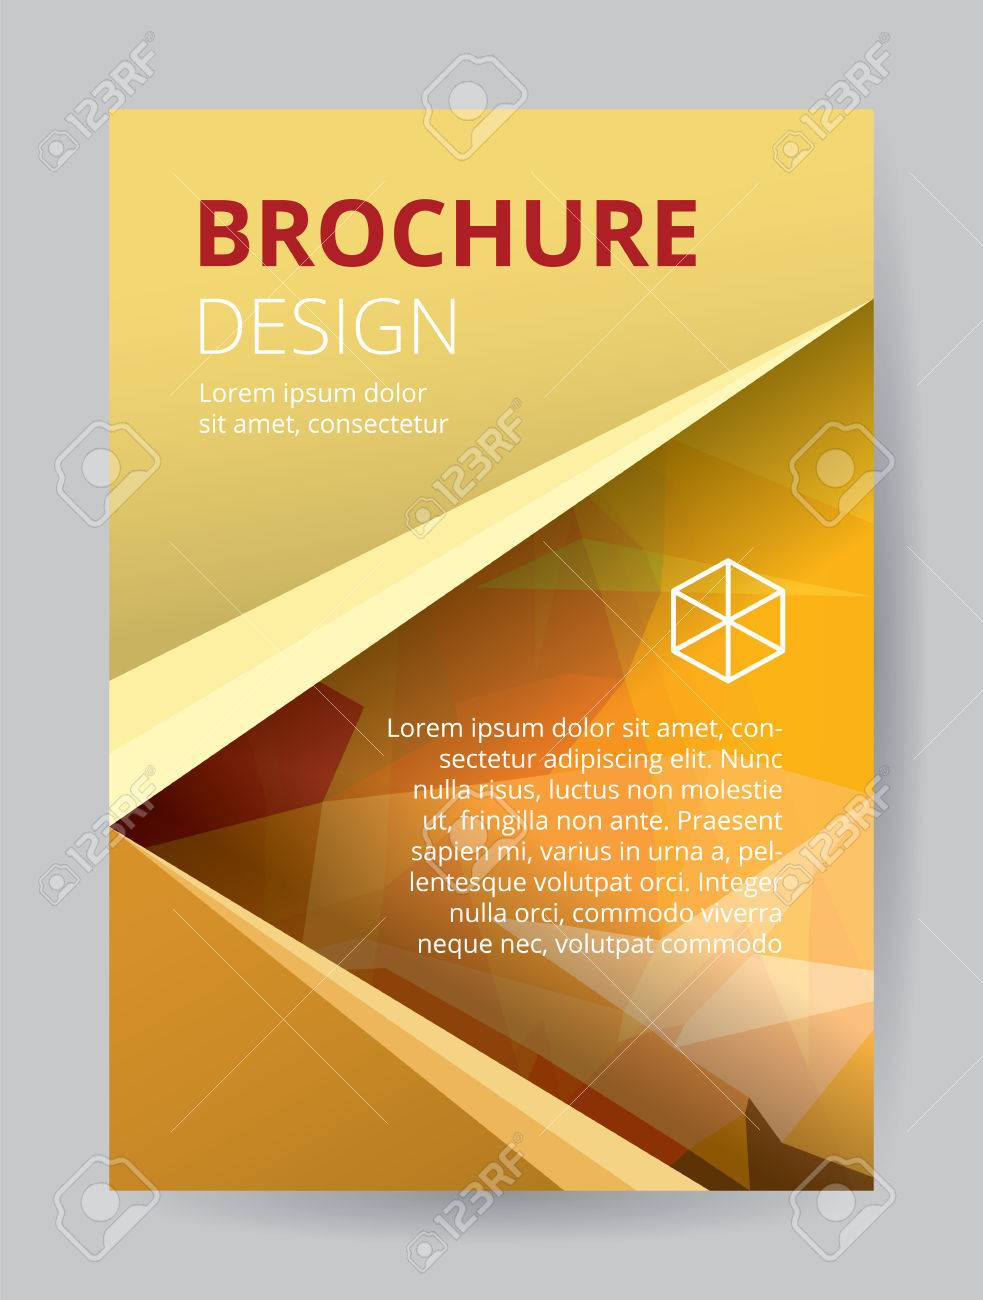 e747b8dfe8462c Flyer template A4 size gold low polygon color theme background. Red orange  yellow company logo